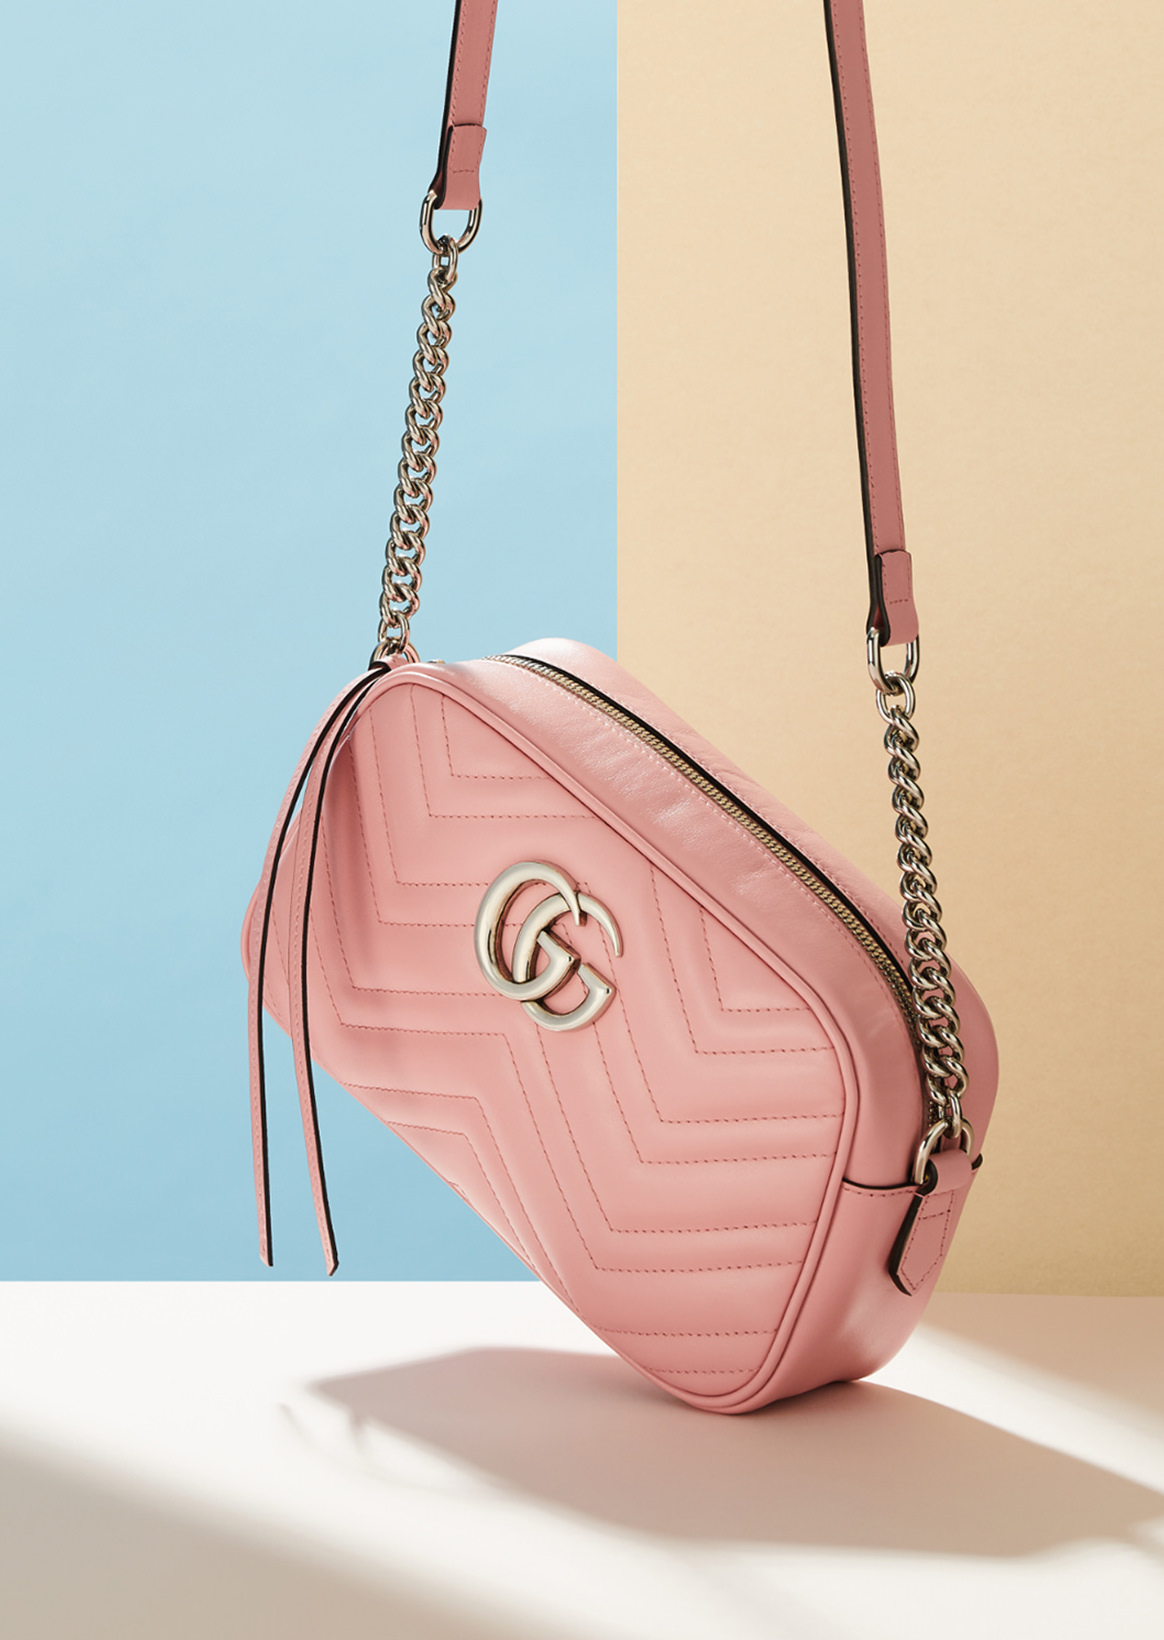 [GUCCI] GG mamonto which was colored by fresh pastel color